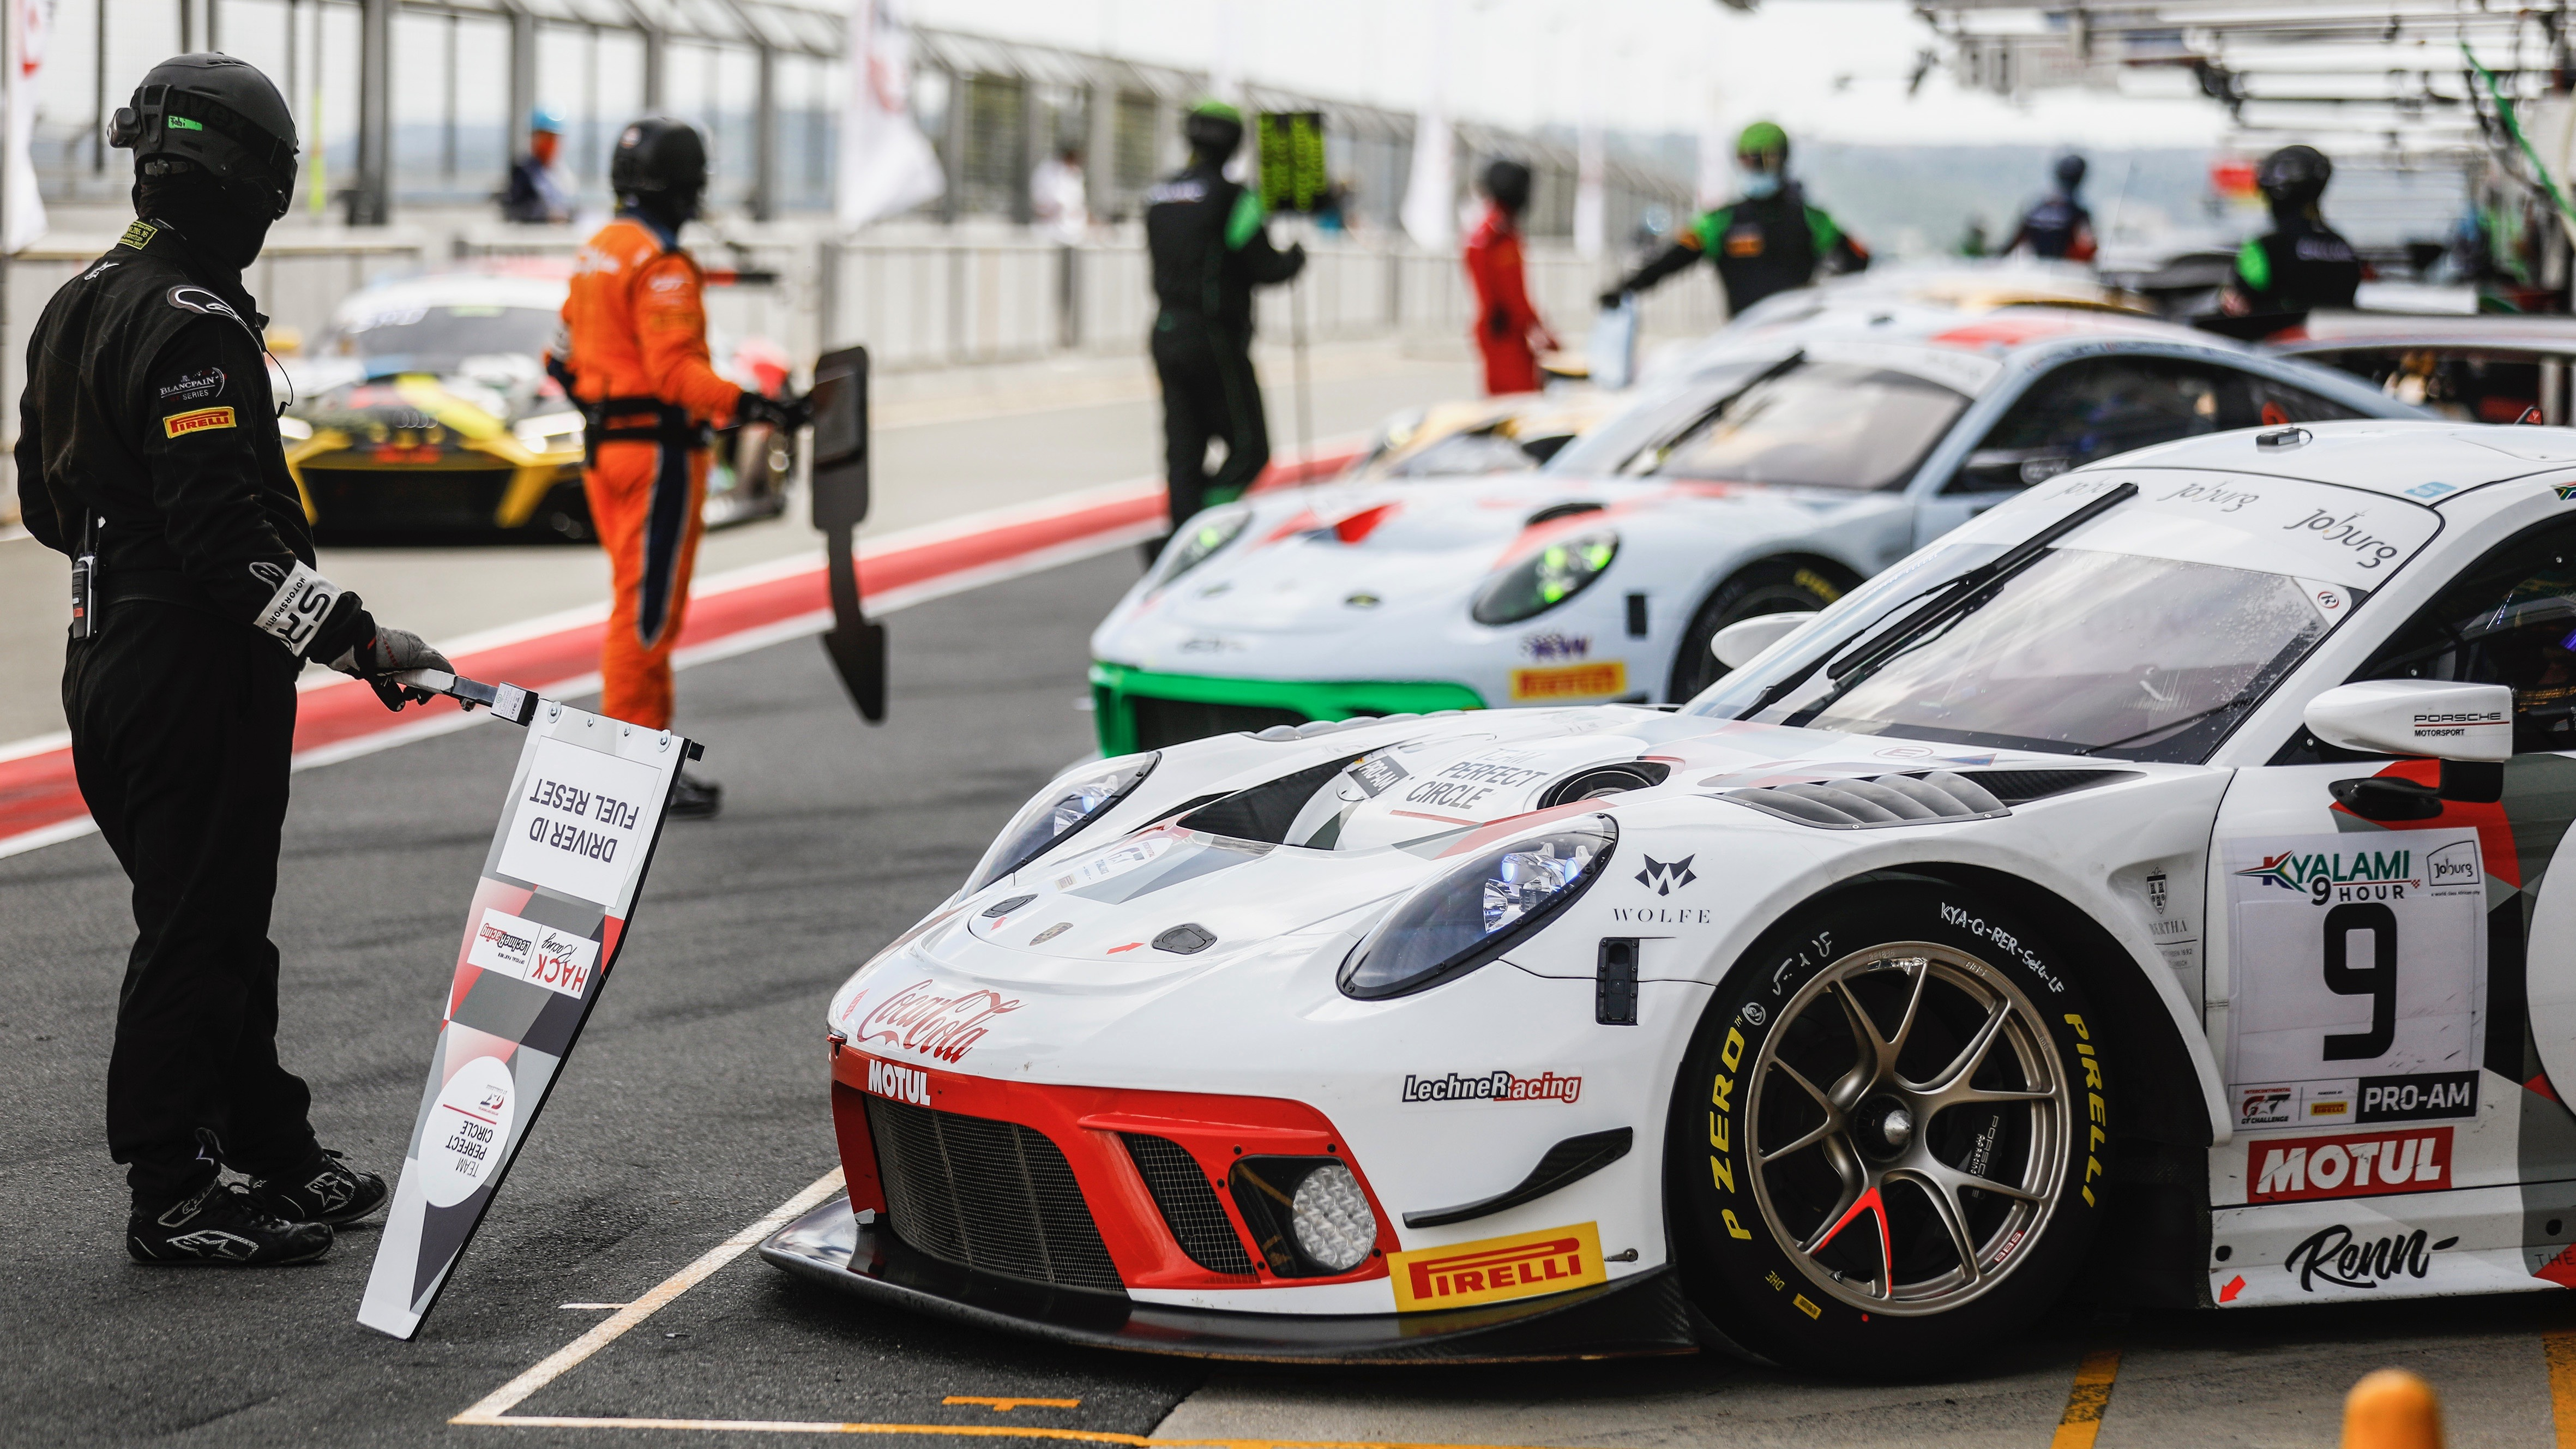 911 GT3 R, Qualifying, Intercontinental GT Challenge, Round 4, Kyalami, South Africa, 2020, Porsche AG